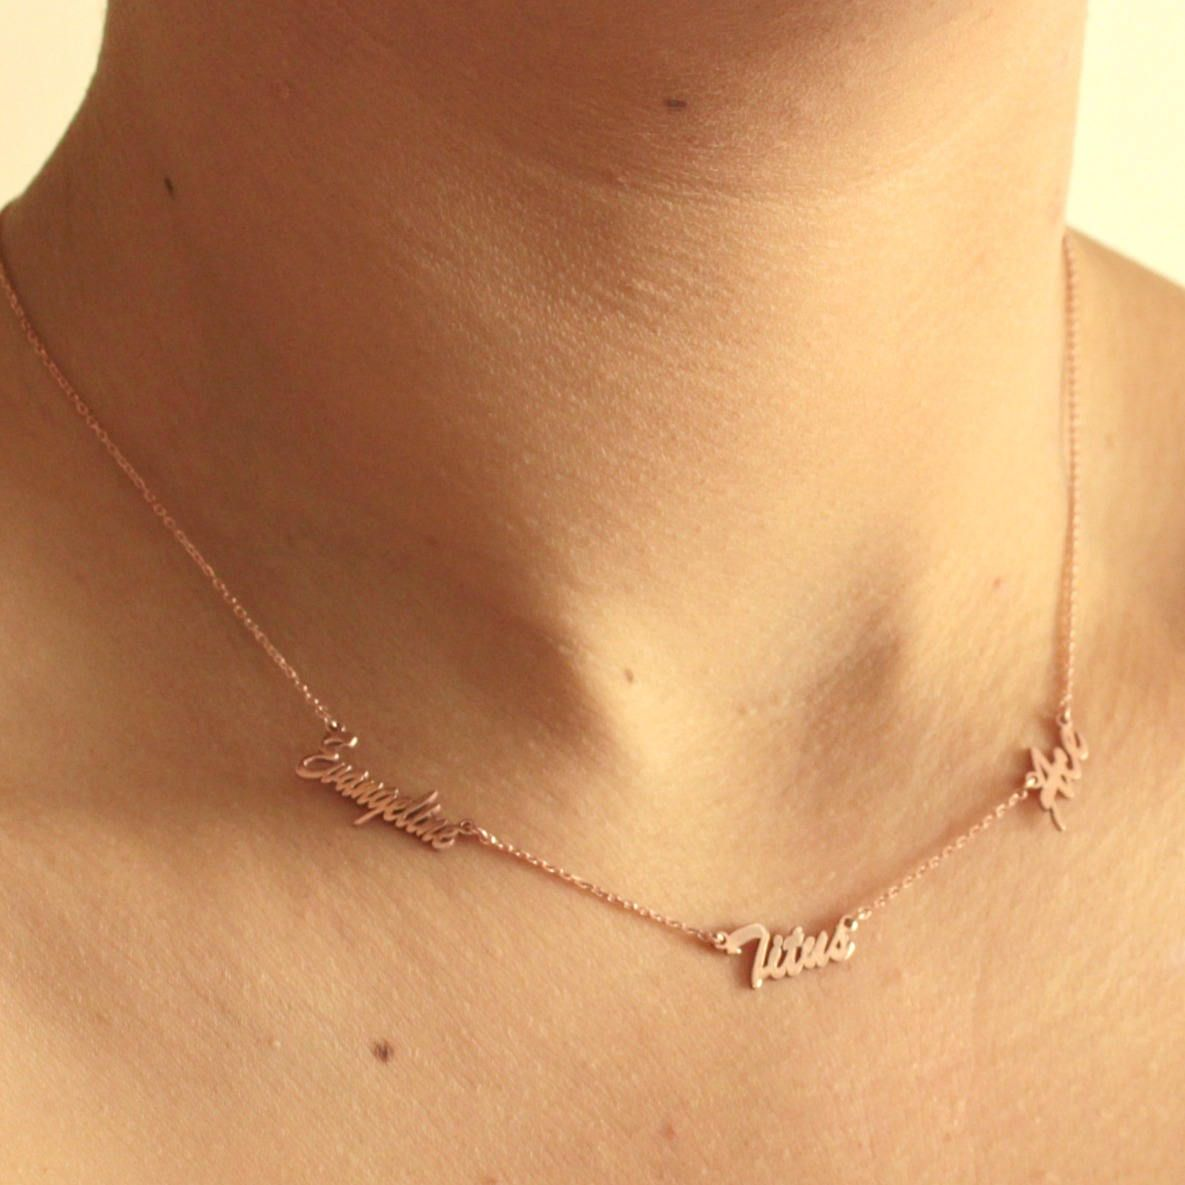 14k Rose Gold Sideways Necklace Three Names Necklace Personalized Name Necklace Sideways Sideways Initial Necklace Monogram Necklace Gold Sideways Necklace